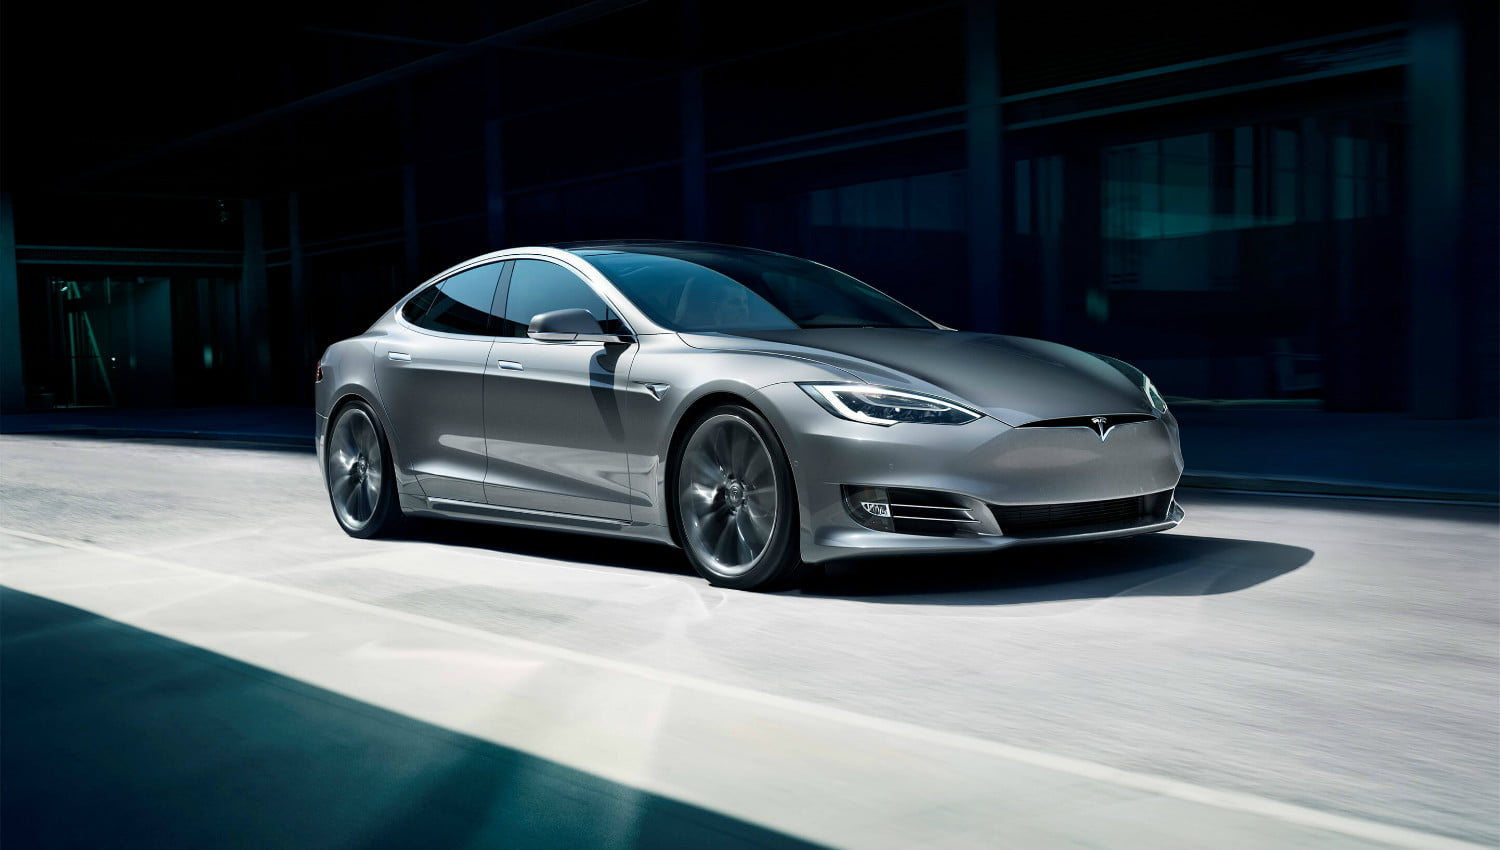 Tesla Model Odel X Charge Faster And Go Her With The Same Battery